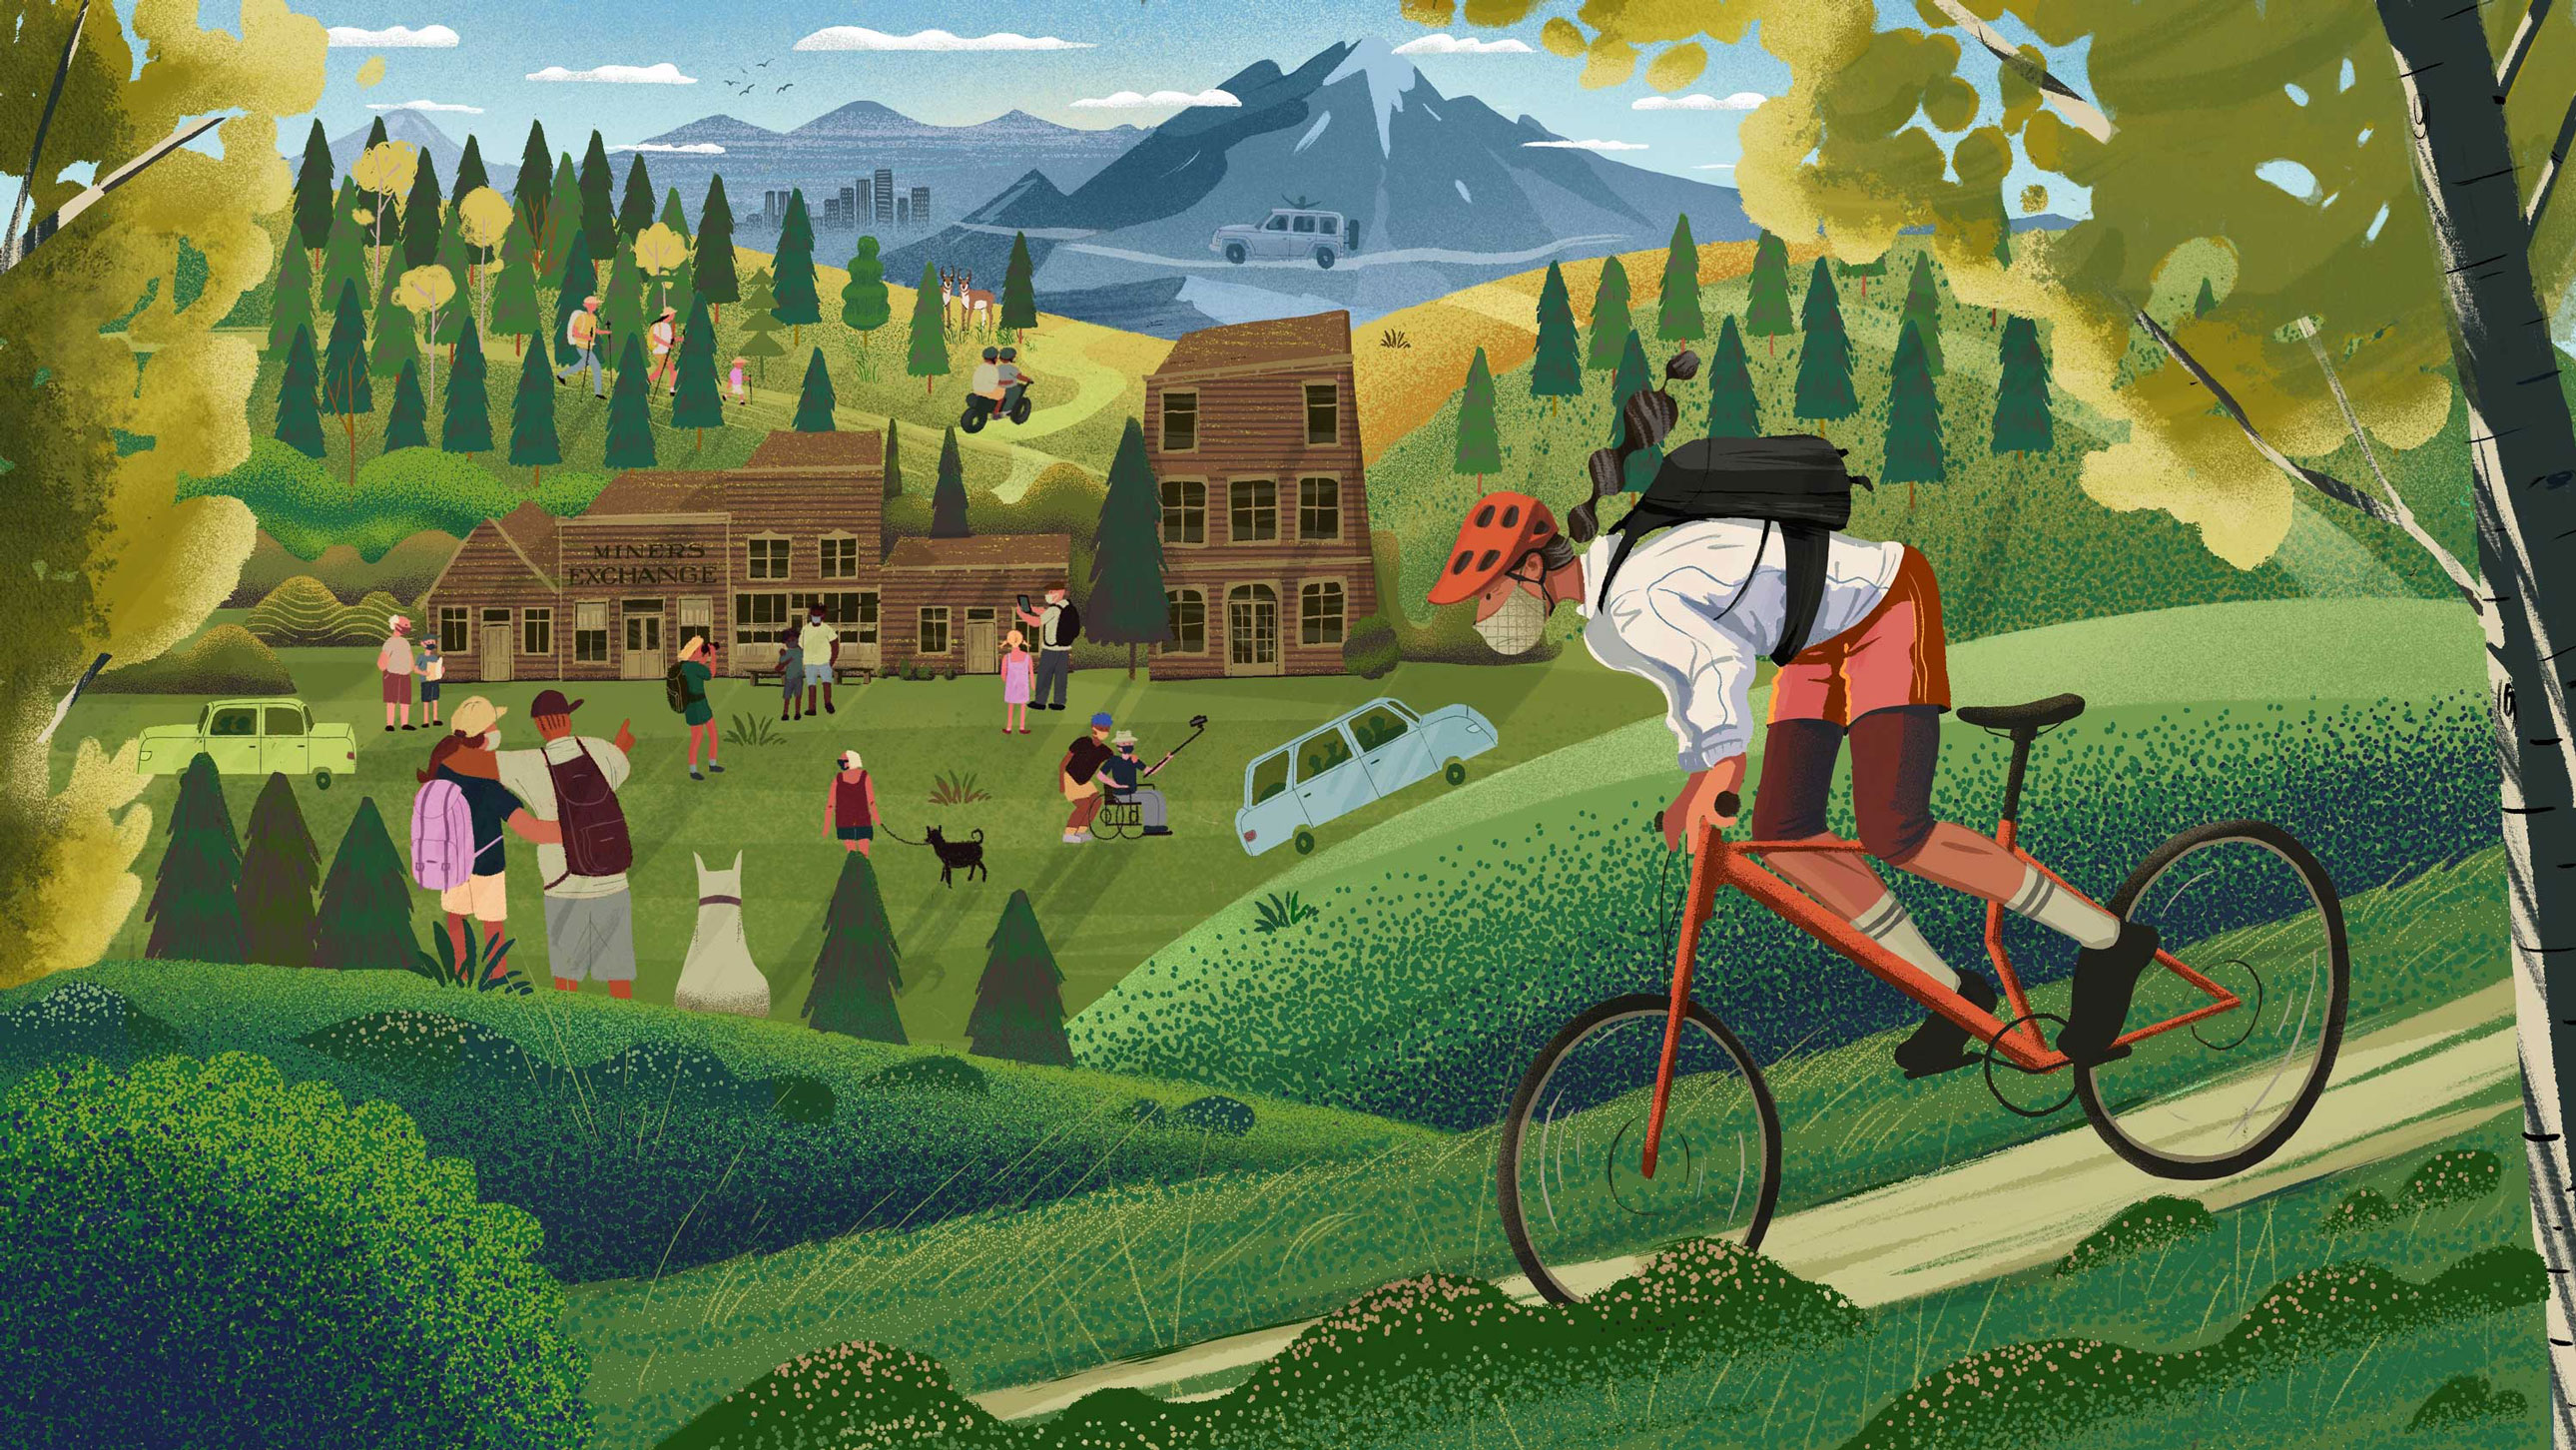 An illustration of a woman biking down a hill. In the background, people are walking through a ghost down, hiking through a forest, and driving up a mountain.